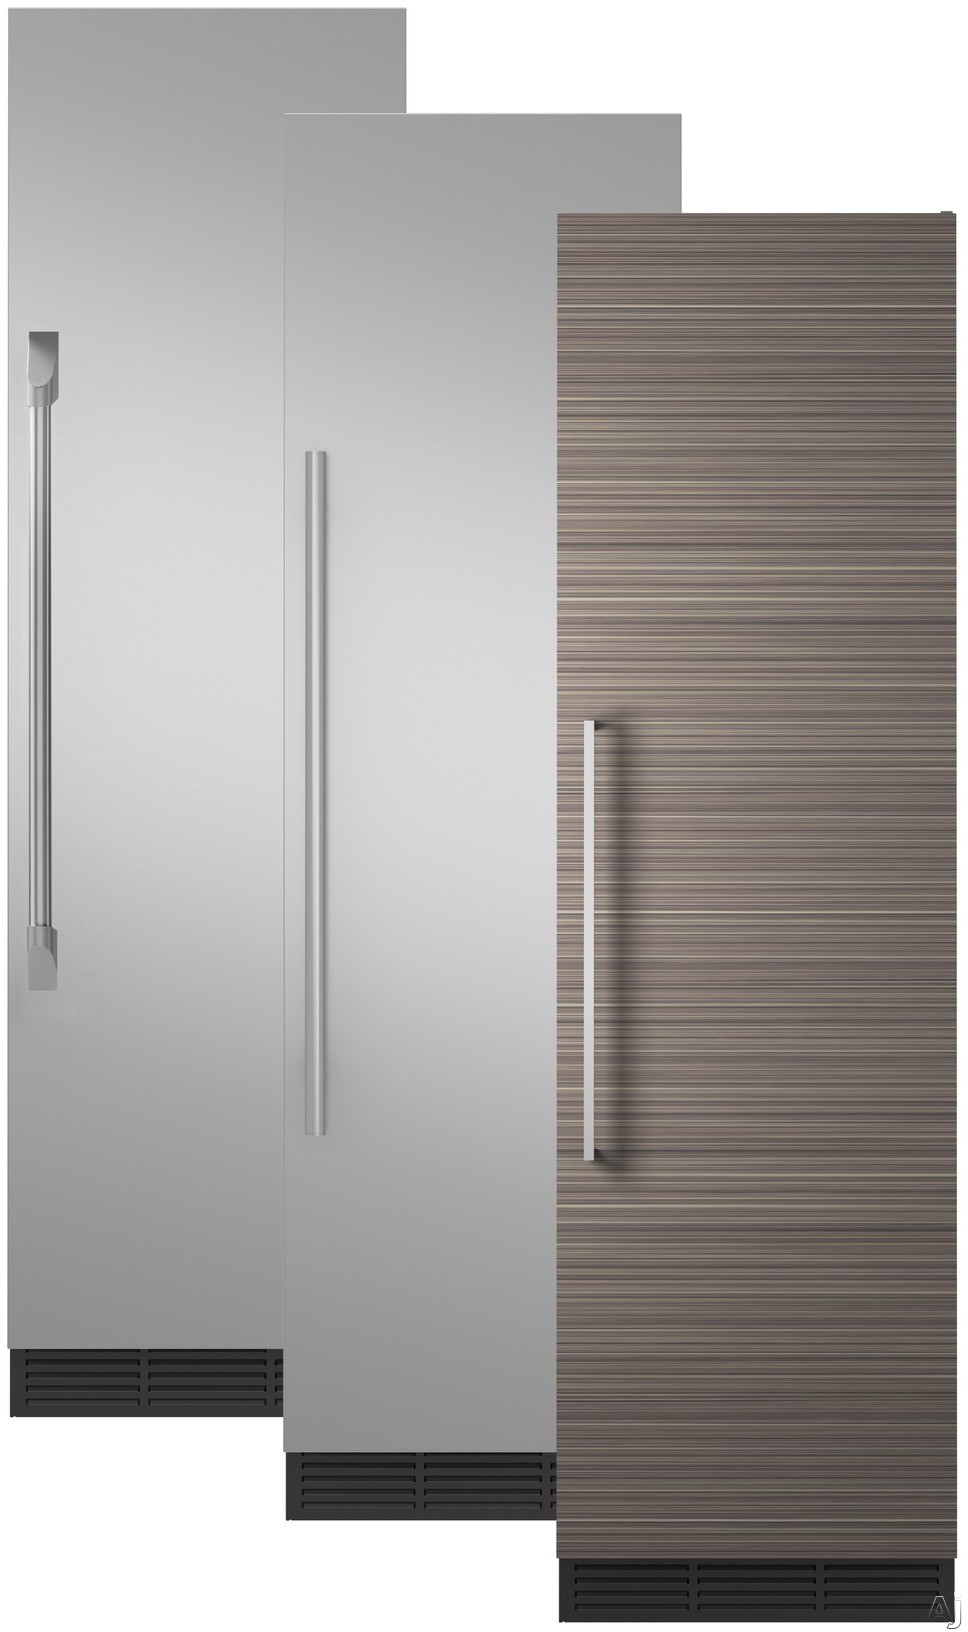 Image of Monogram ZIR240NPKII 24 Inch Panel Ready Refrigerator Column with Wi-Fi Connectivity, Autofill Pitcher, Spill-Resistant Glass Shelving, Adjustable Door Bins, Humidity-Controlled Vegetable Drawer, Temperature-Controlled Drawer, Sabbath Mode and 13.1 cu. ft